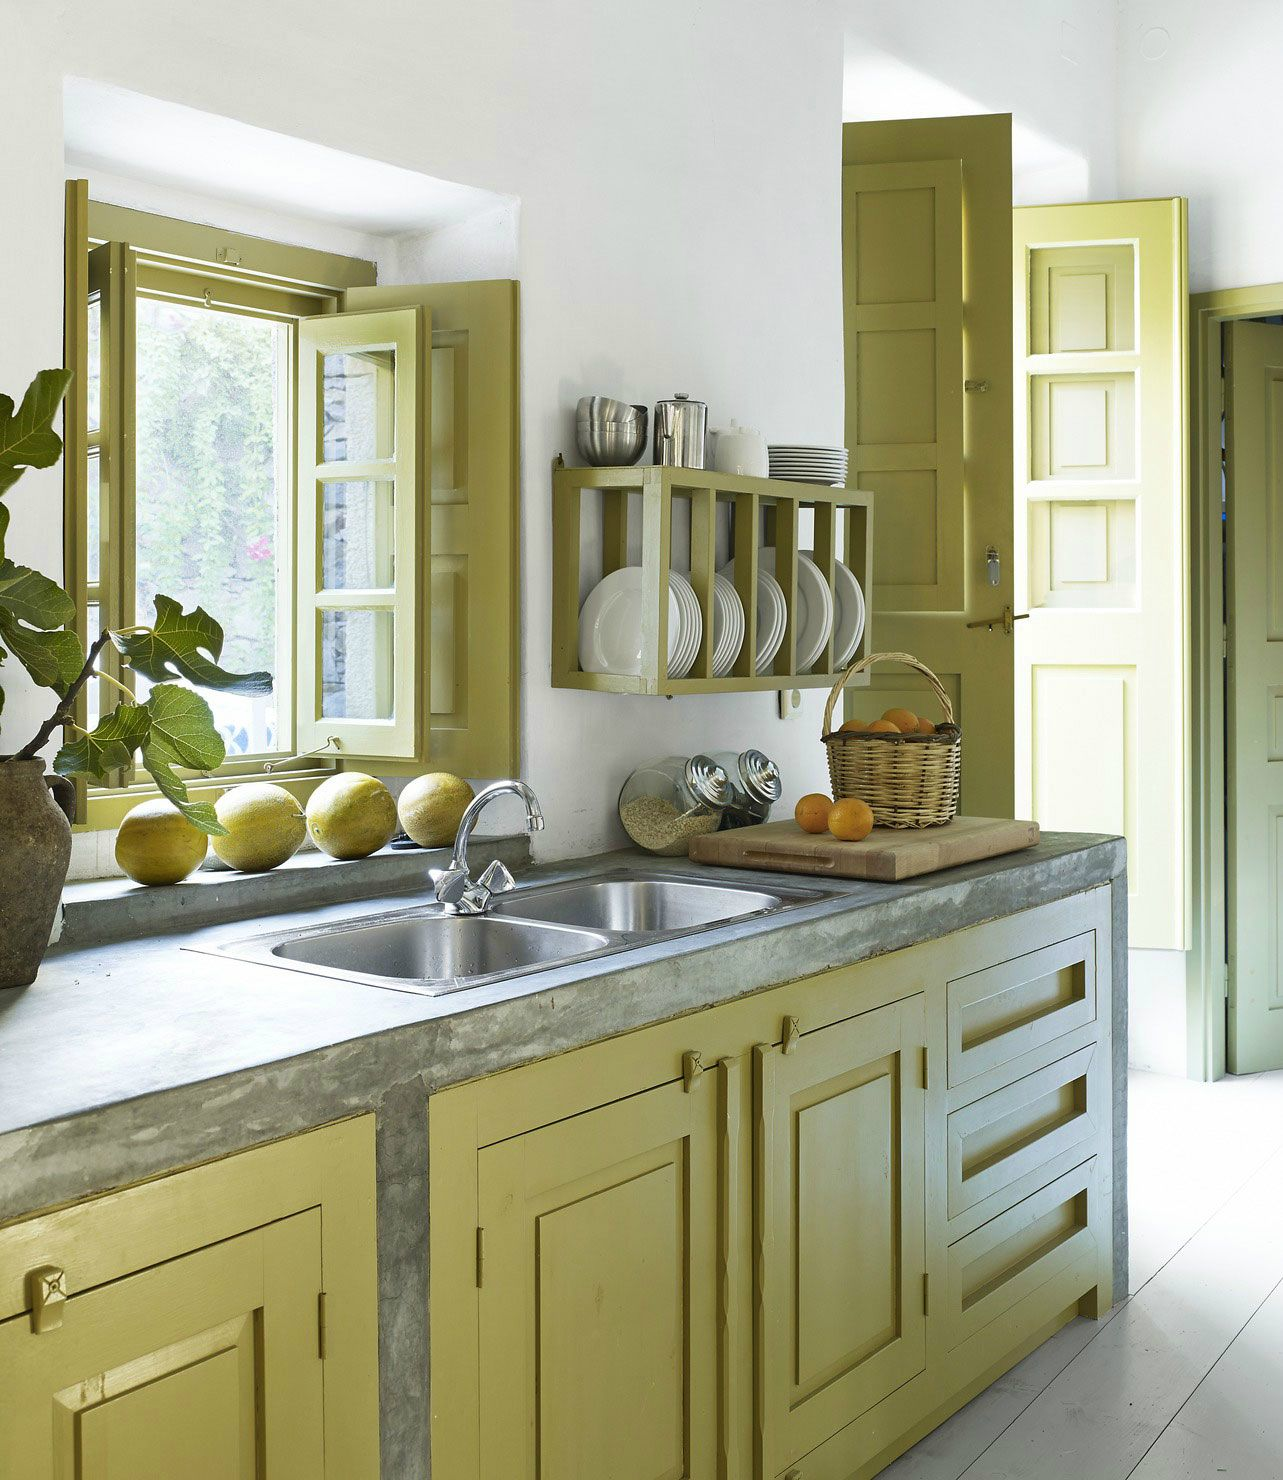 elle decor predicts the color trends for 2017 | yellow kitchen